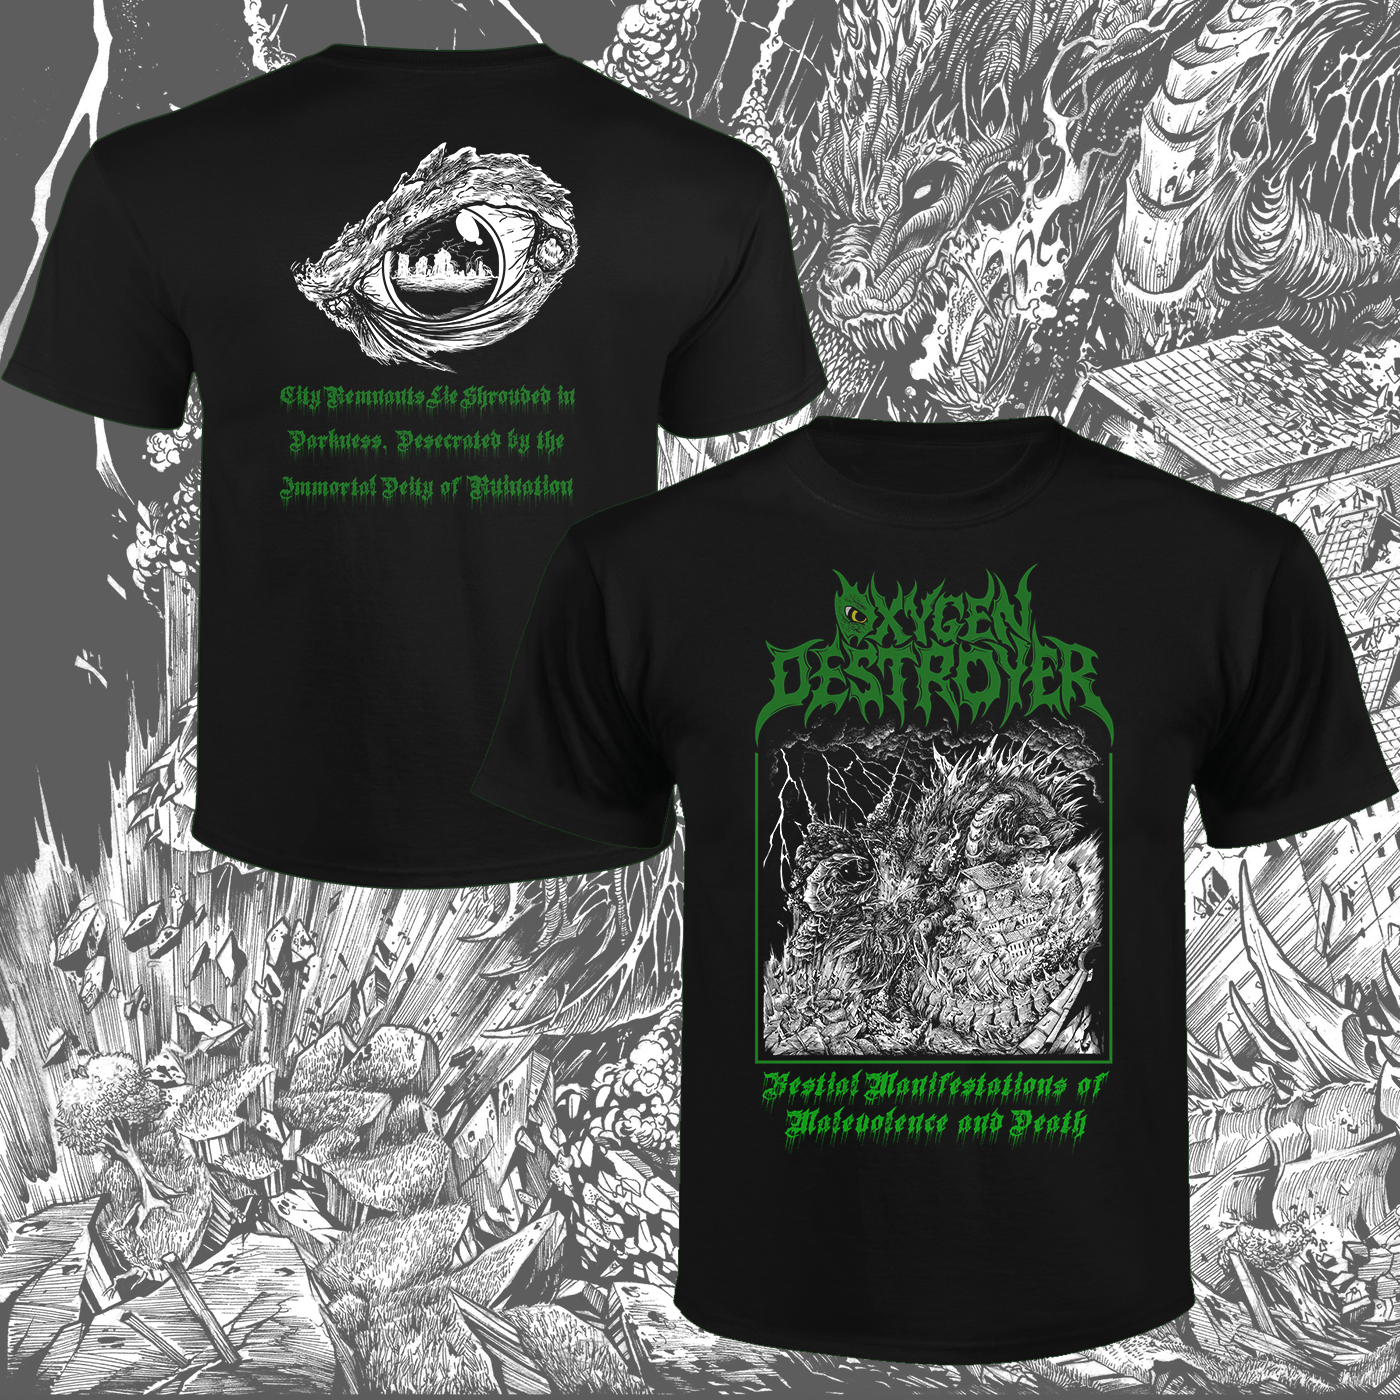 OXYGEN DESTROYER - Bestial Manifestations of Malevolence and Death T-Shirt